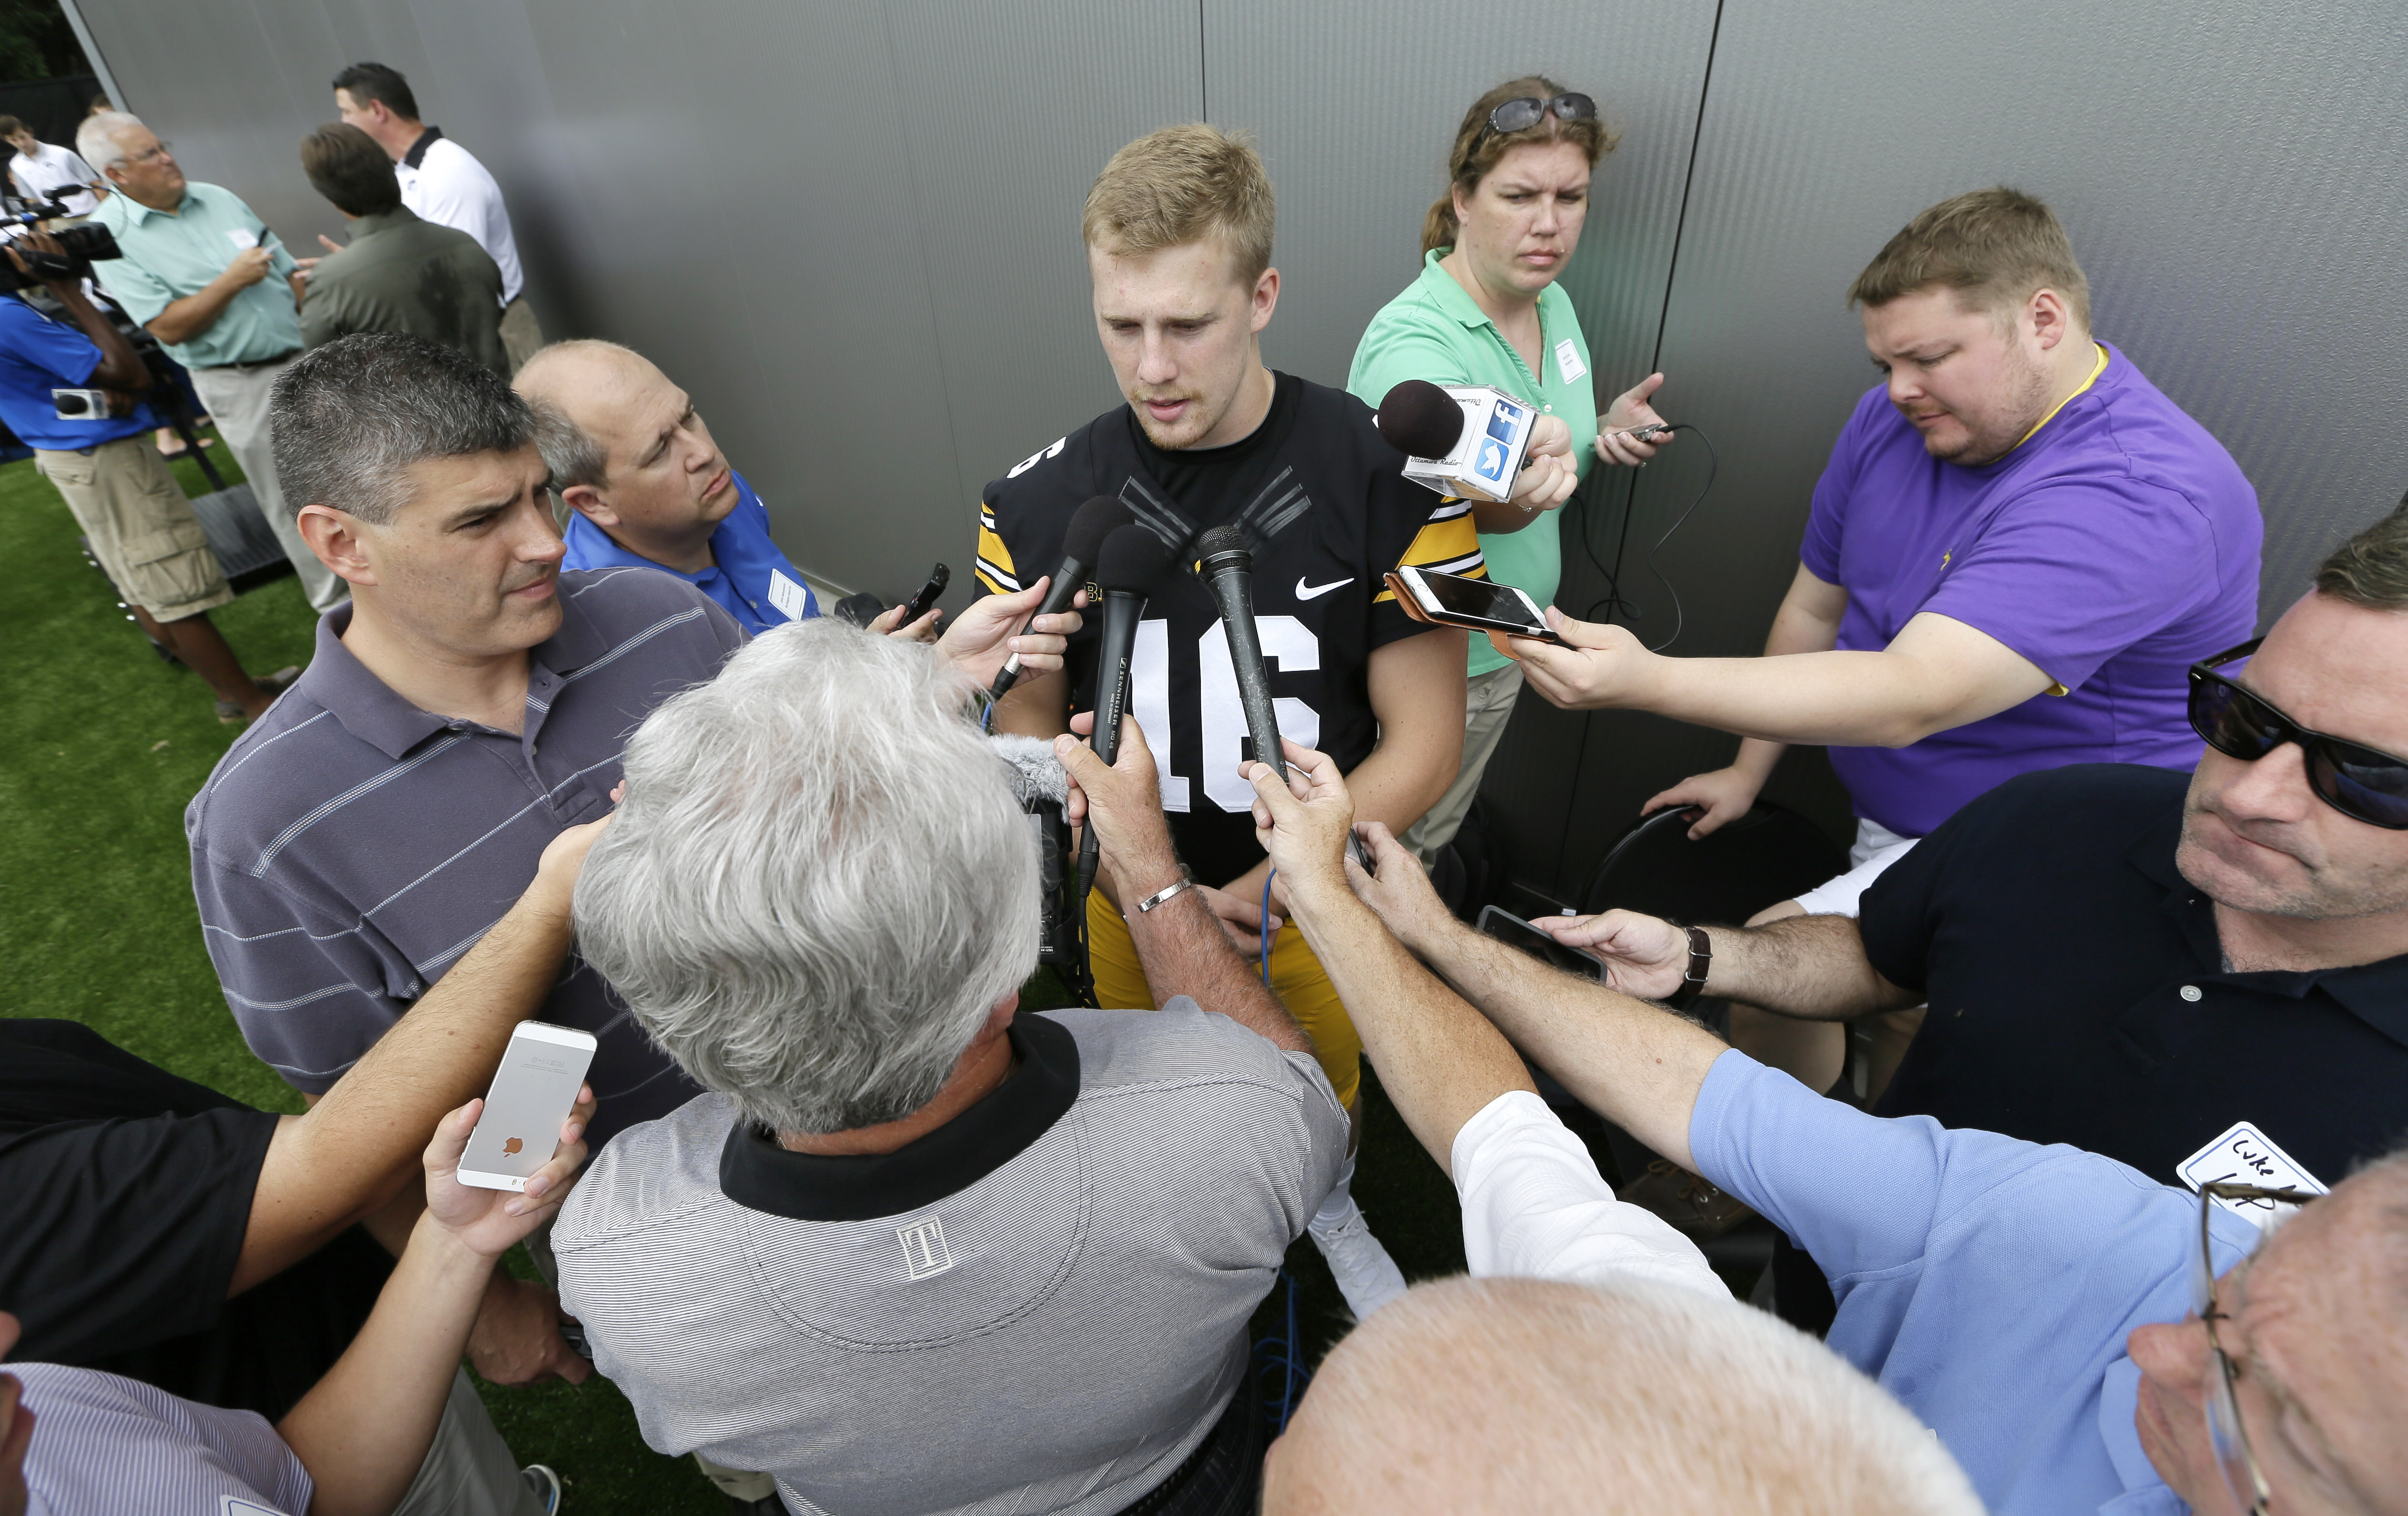 Iowa quarterback C.J. Beathard, center, speaks to reporters during the annual NCAA college football media day, Saturday, Aug. 8, 2015, in Iowa City, Iowa. (AP Photo/Charlie Neibergall)